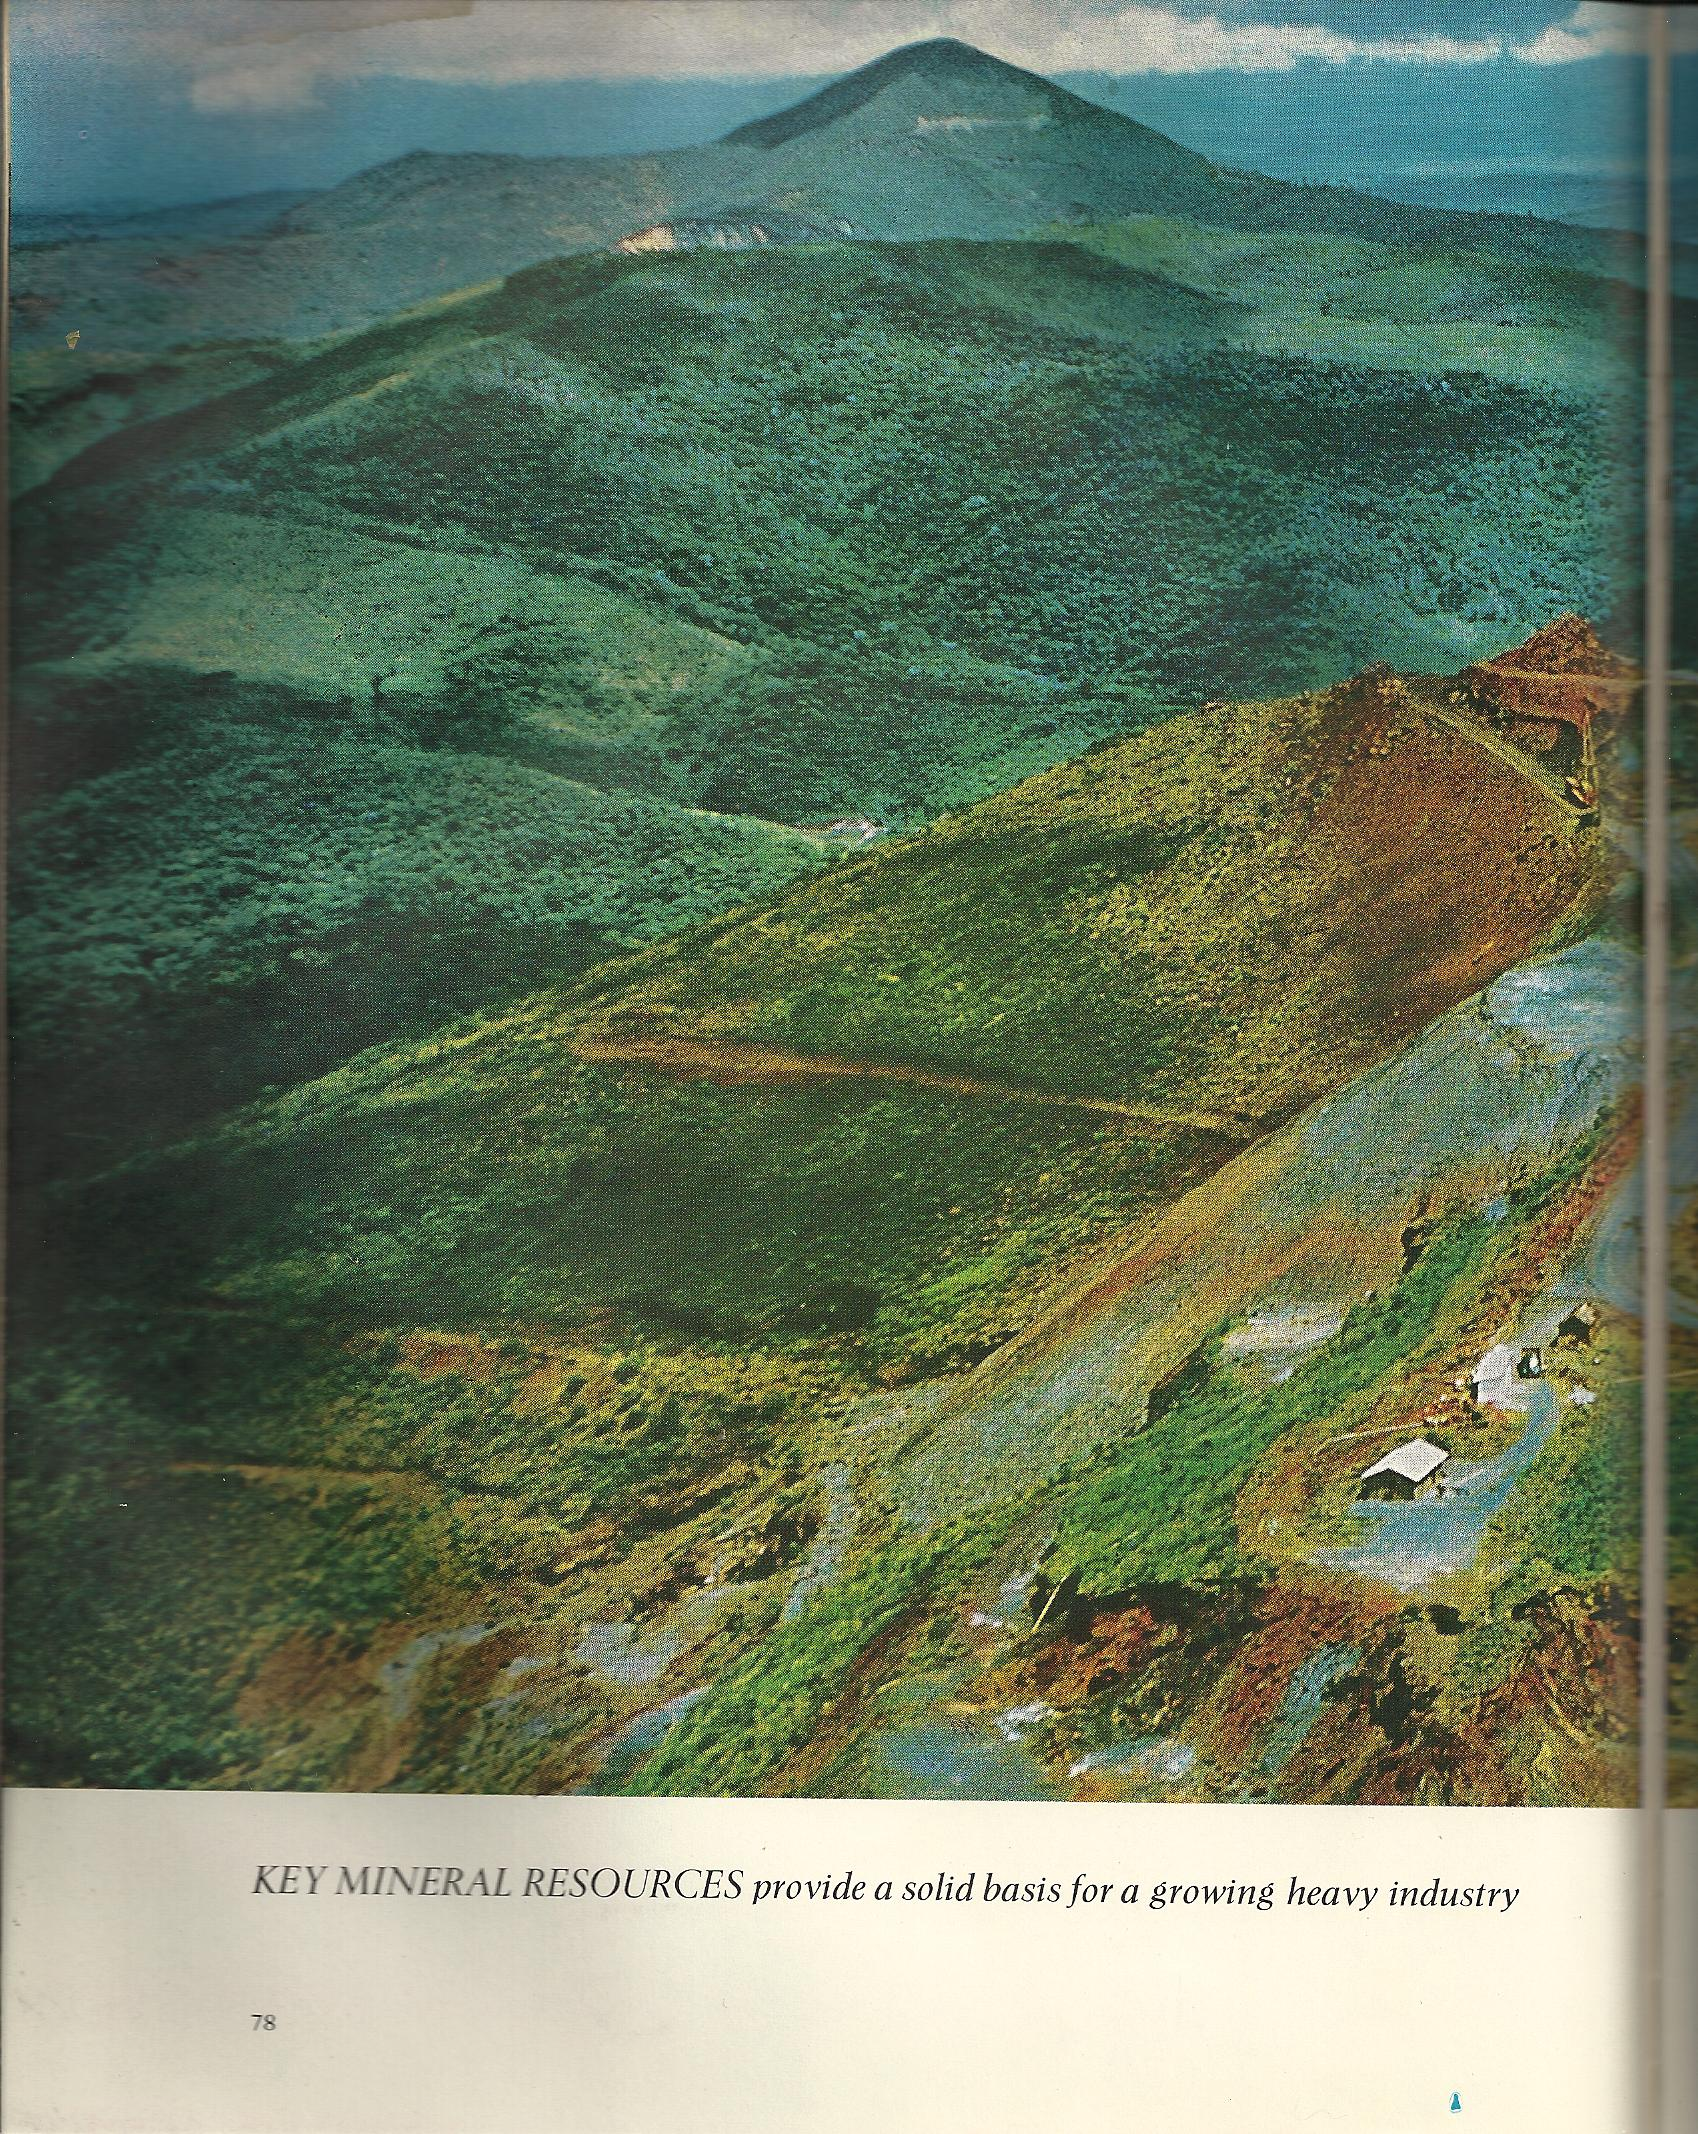 Brazil Iron Ore Mine - 1962 - Time Life World Library - Atlas Obscura Blog